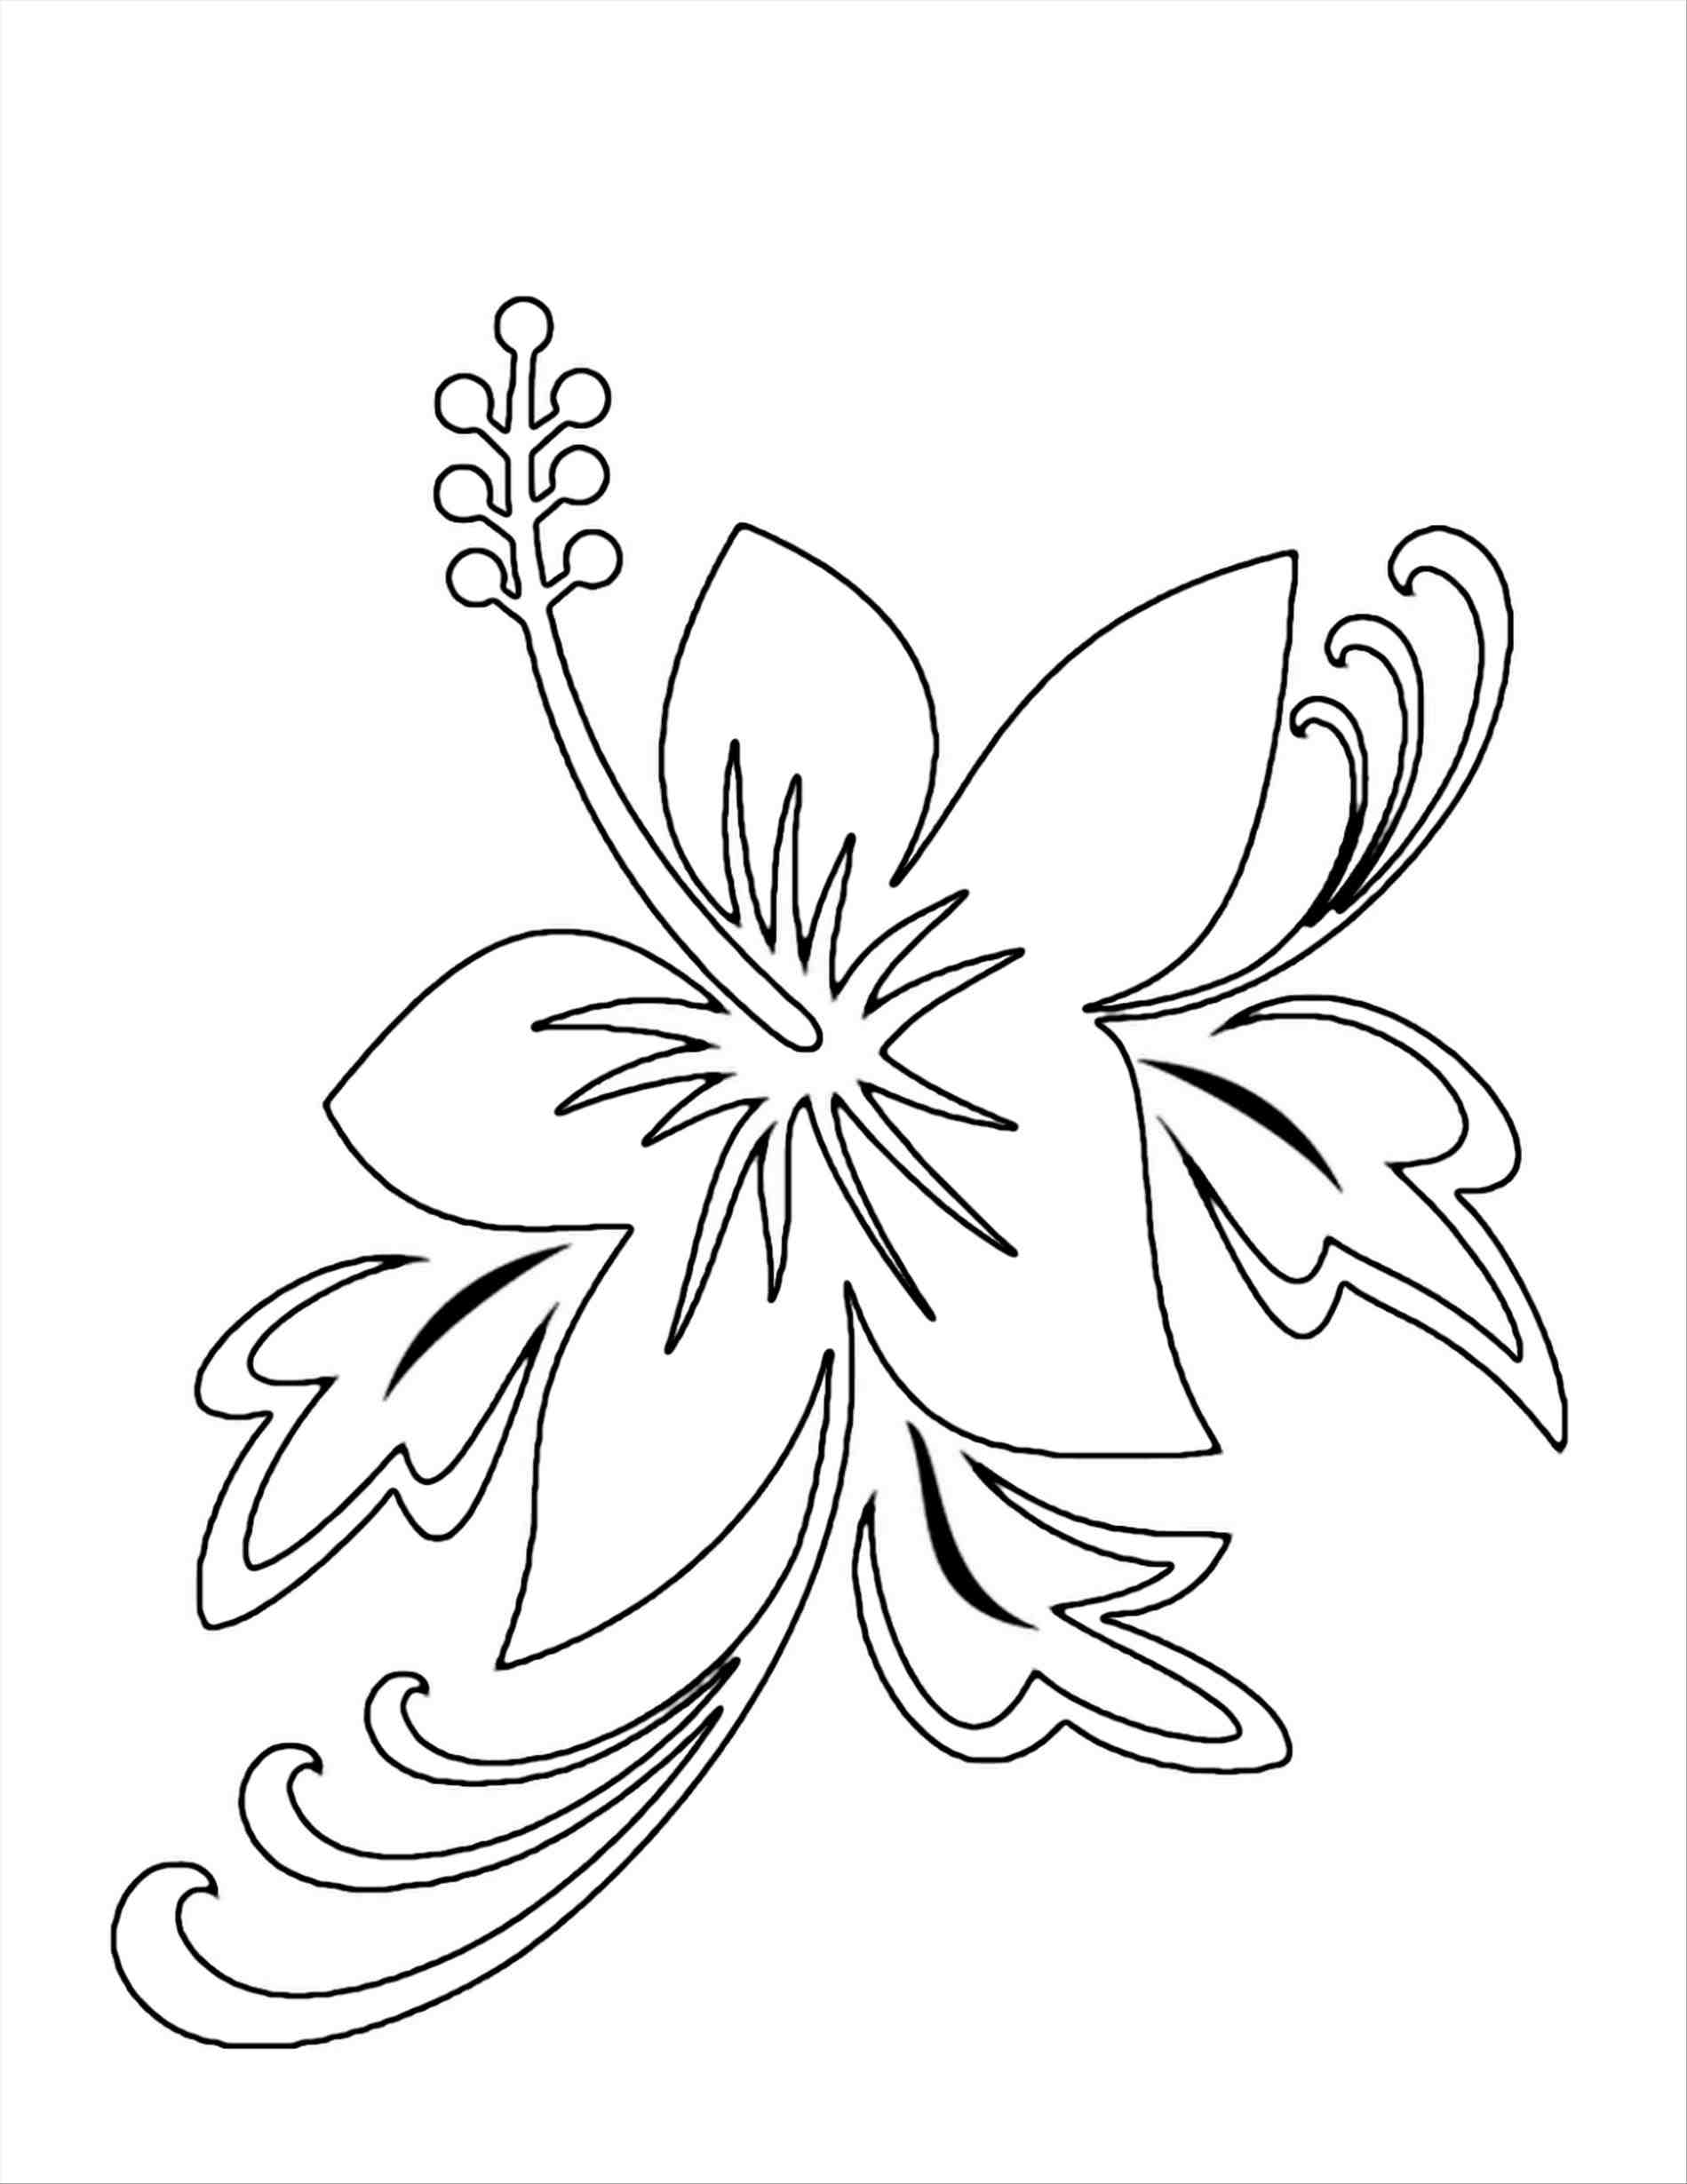 1899x2459 The Images Collection Of Pencil Hard Drawings Of Flowers This Is